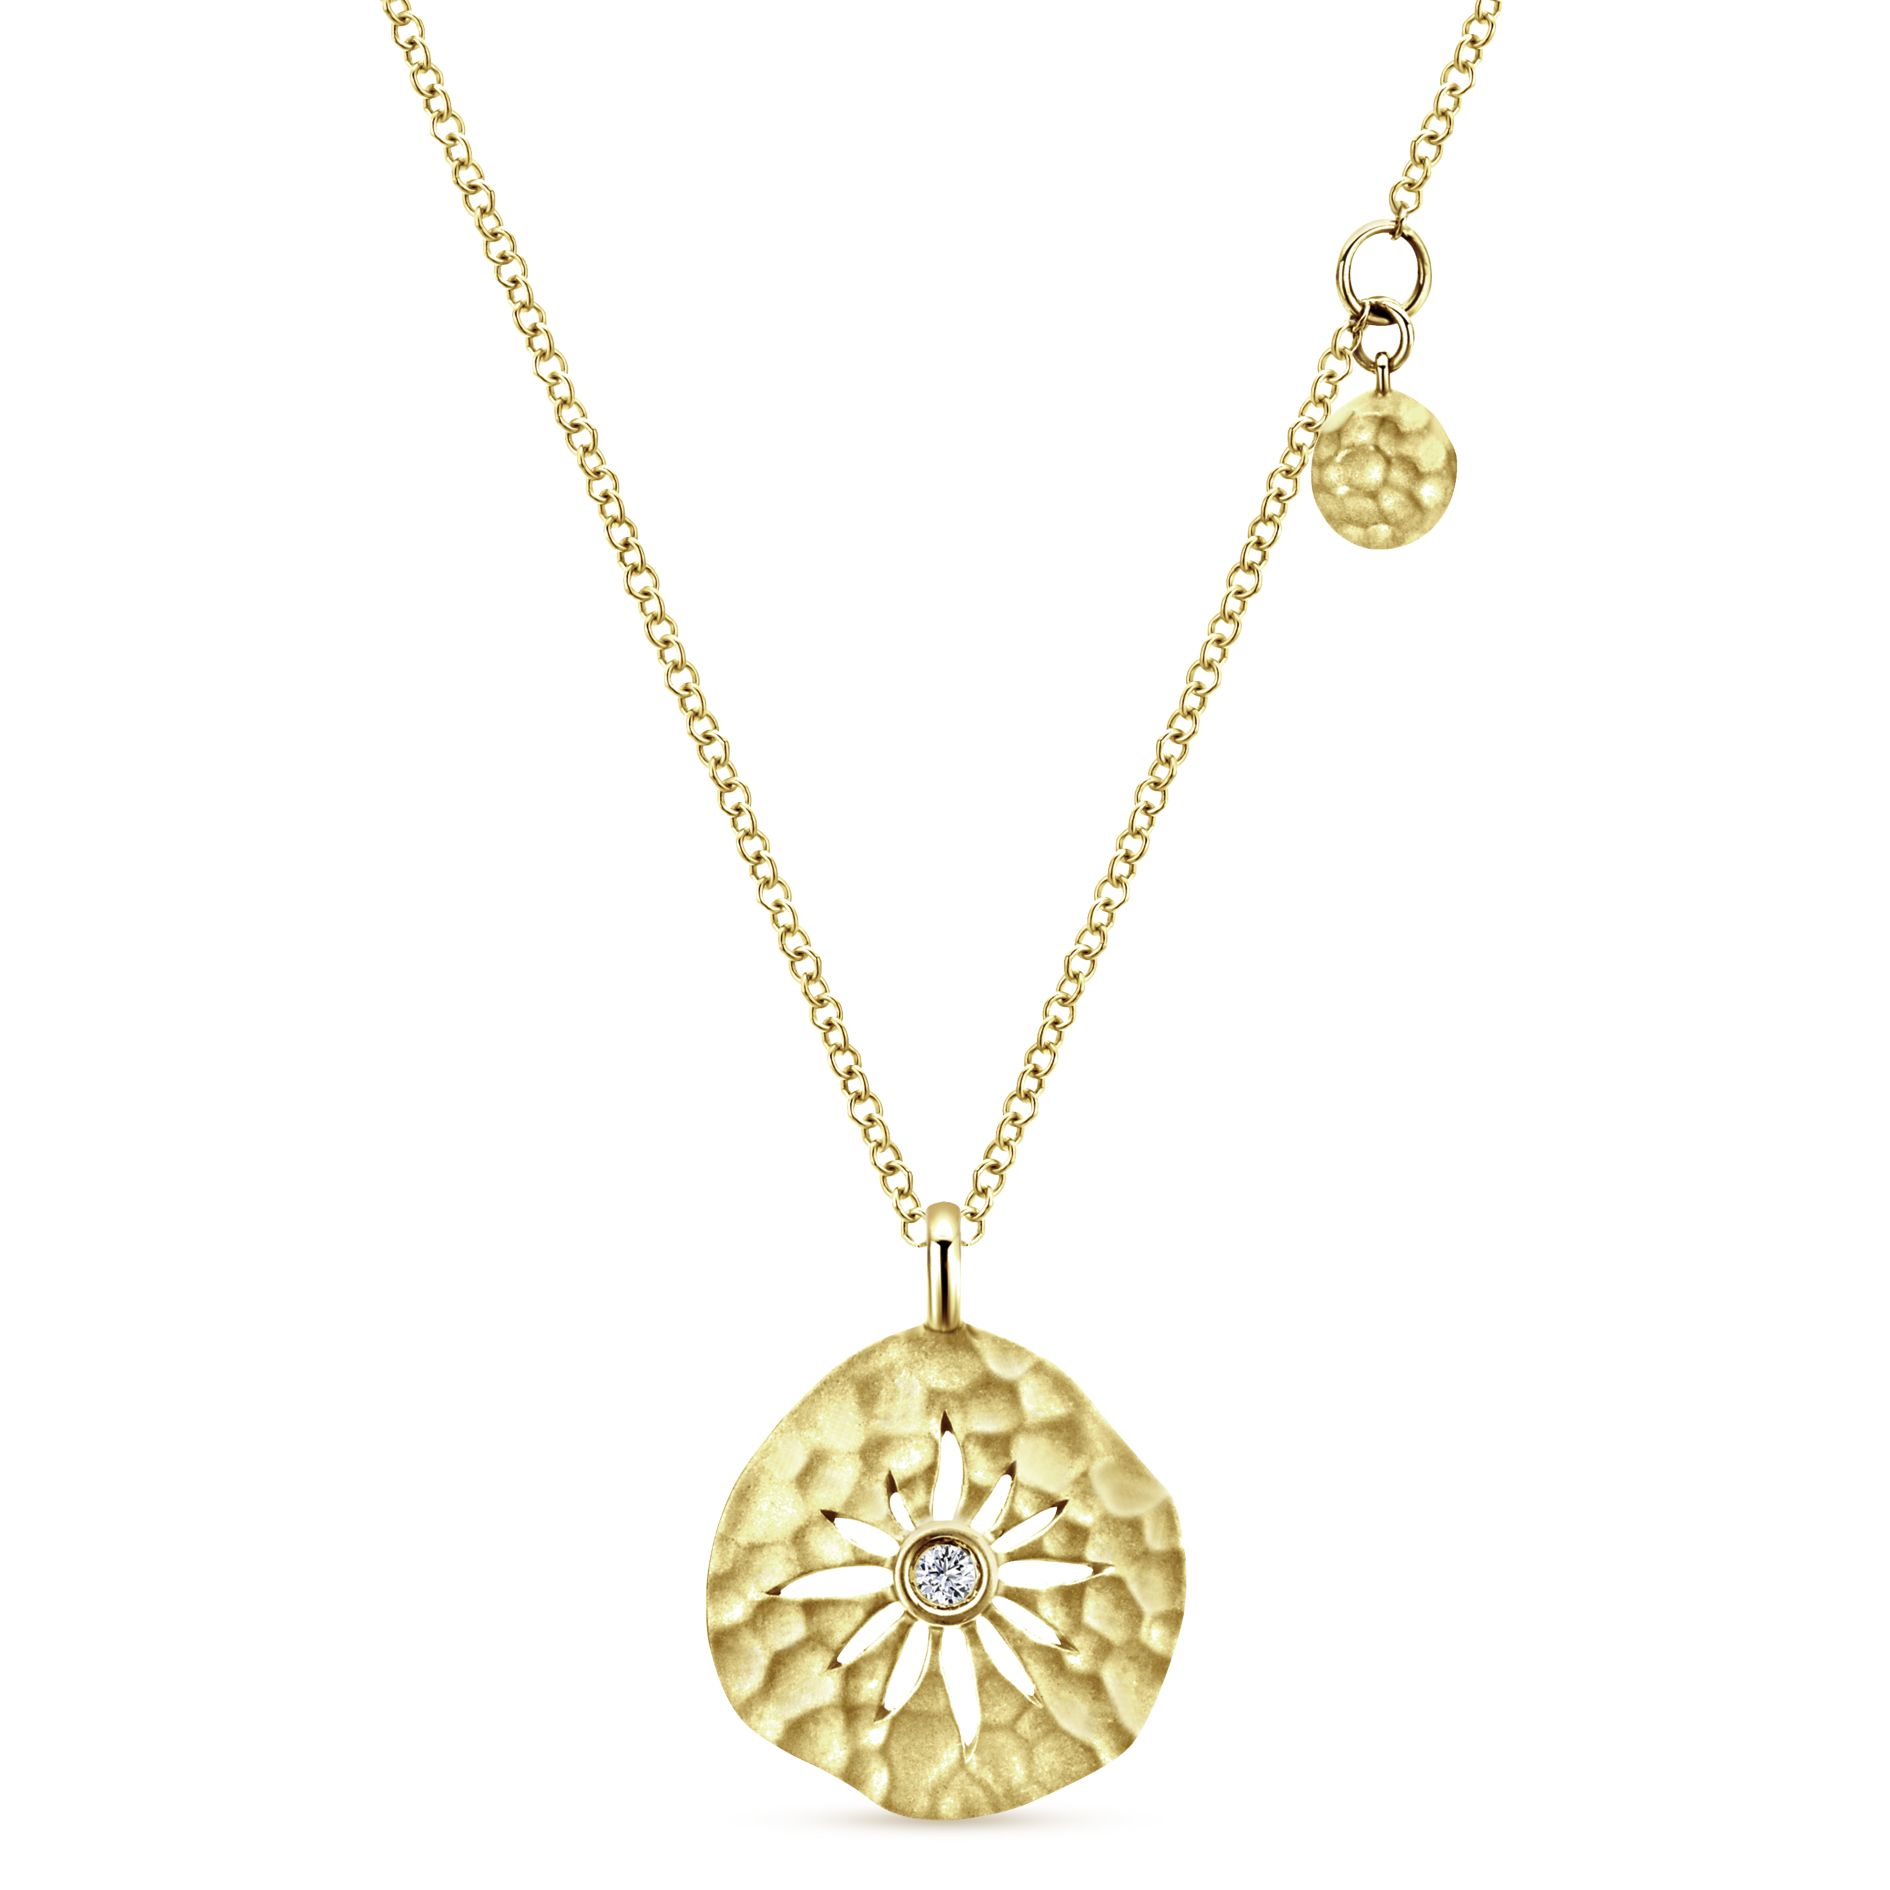 Necklaces - YELLOW GOLD FASHION DIAMOND NECKLACE